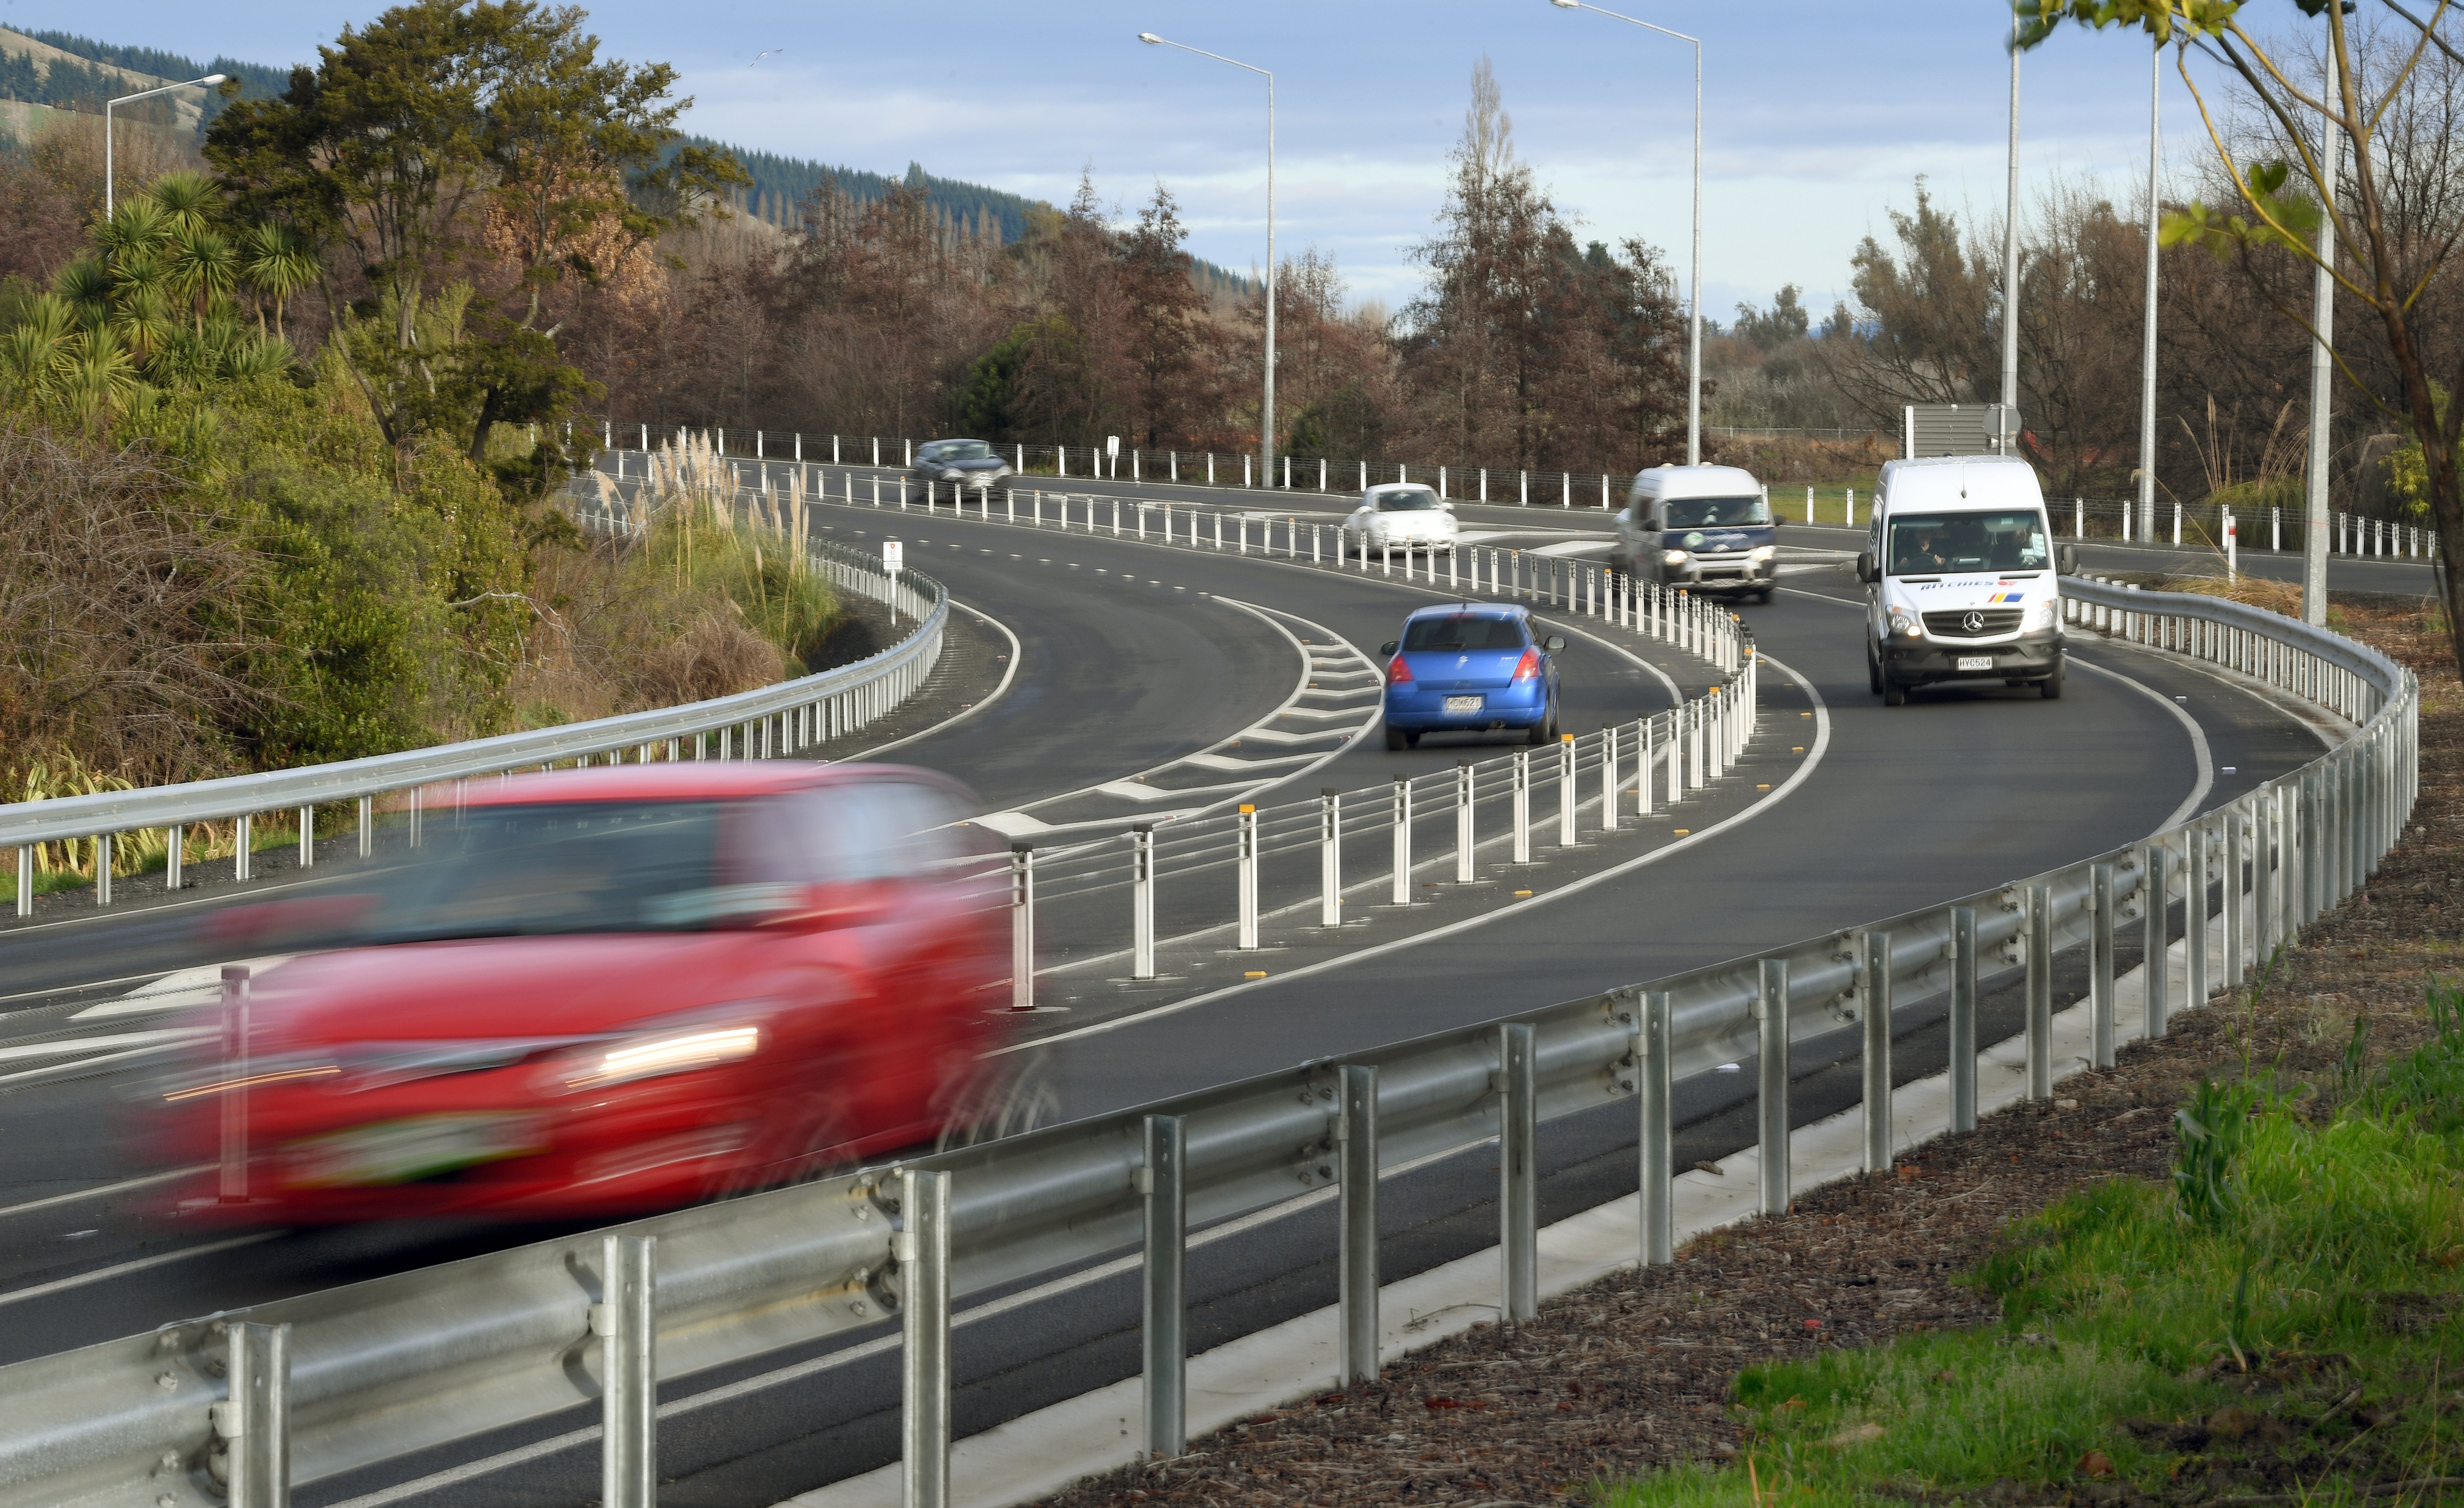 Unsafe vehicles on the road after NZTA blunder | Otago Daily